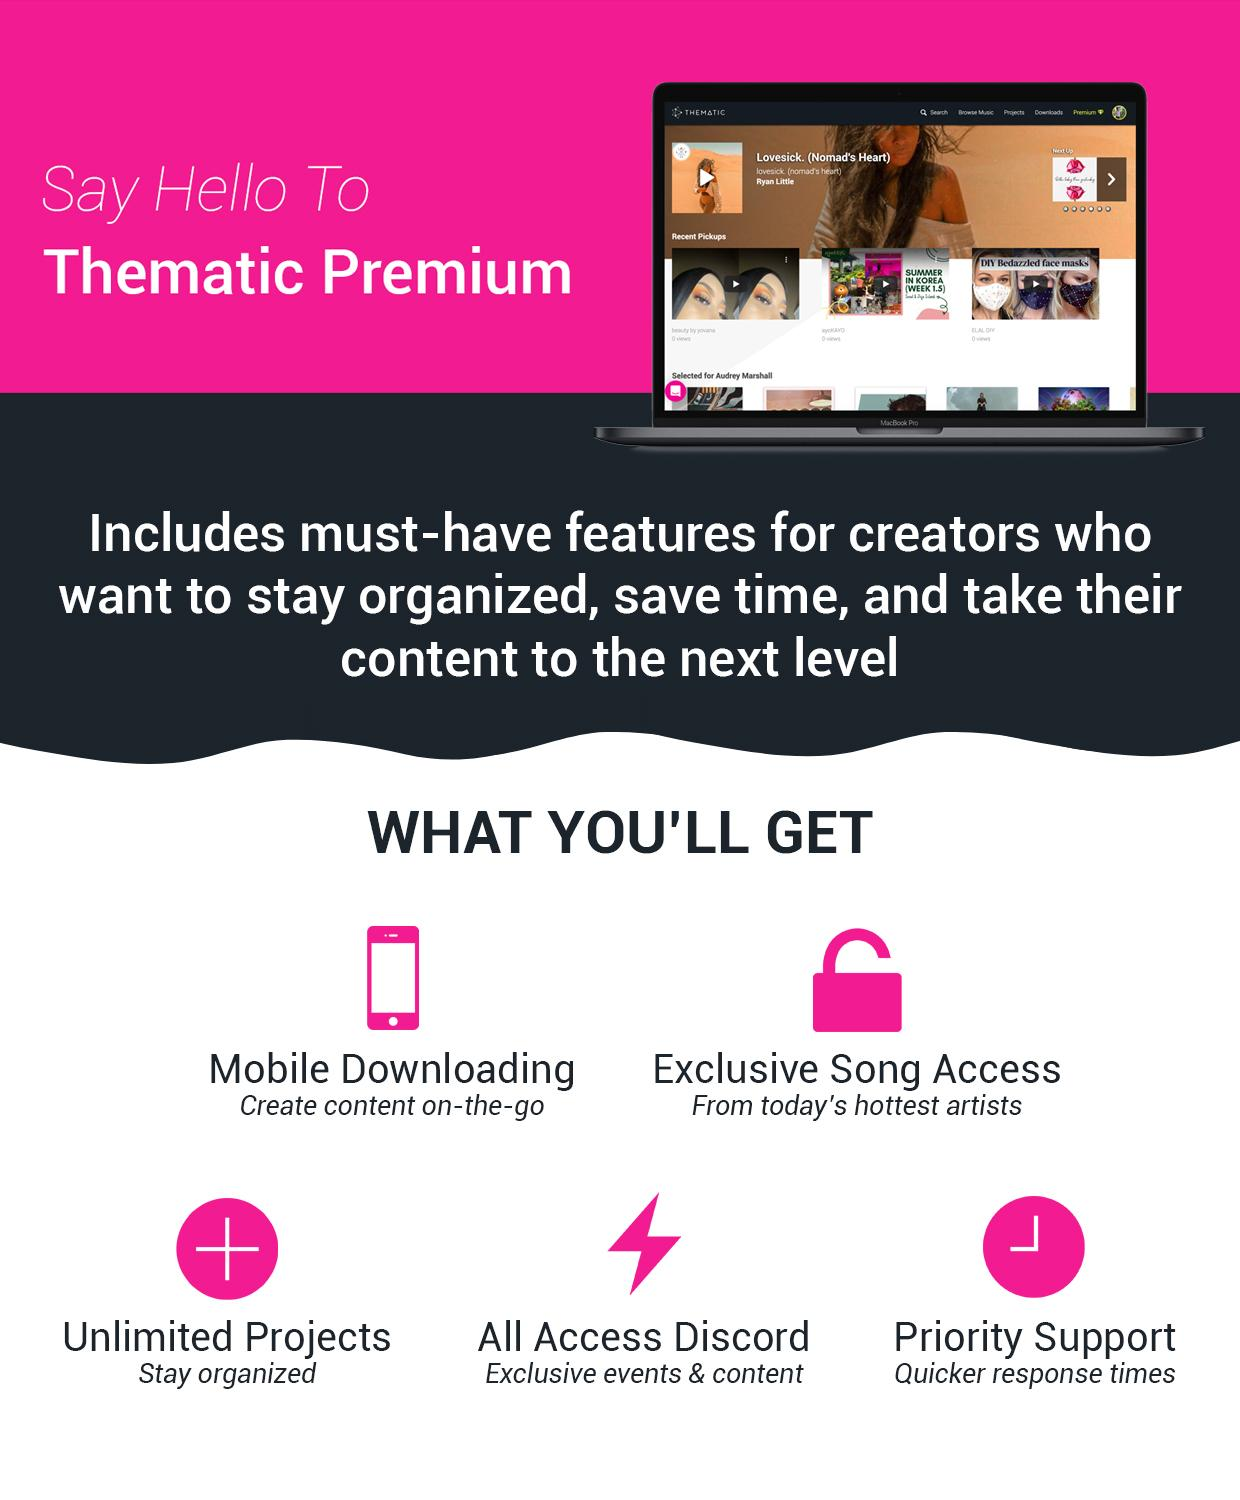 Say Hello to Thematic's Premium Experience